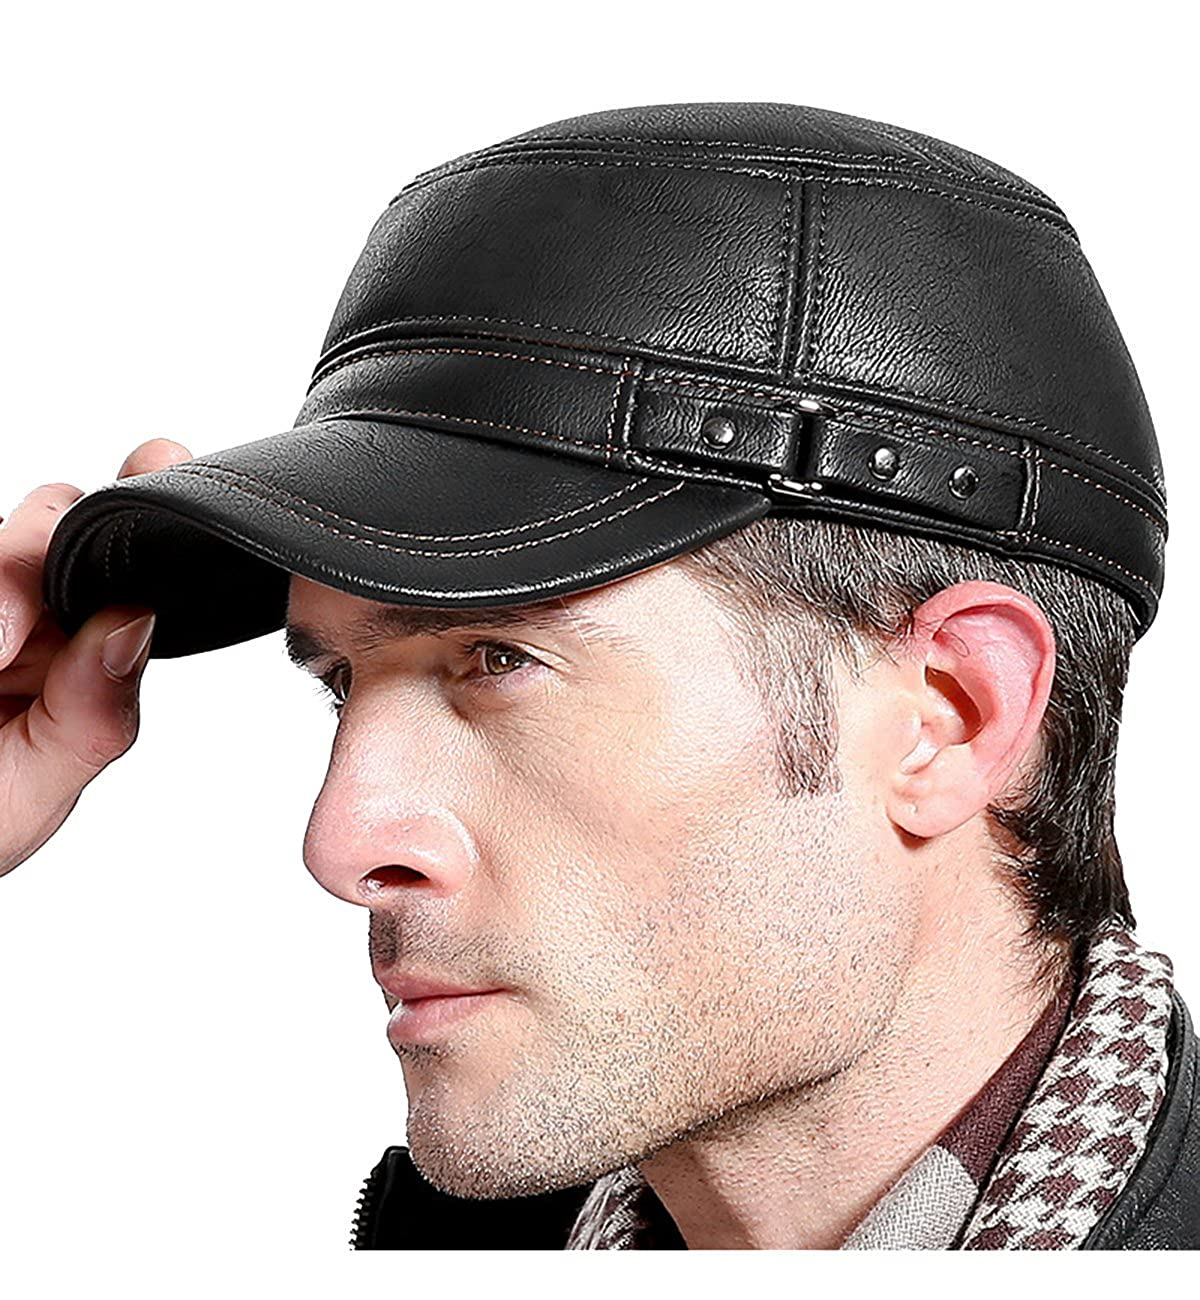 adcd7f846 Sumolux Winter Mens Leather Cap with Earflap Military Cadet Army Flat Top  Hat